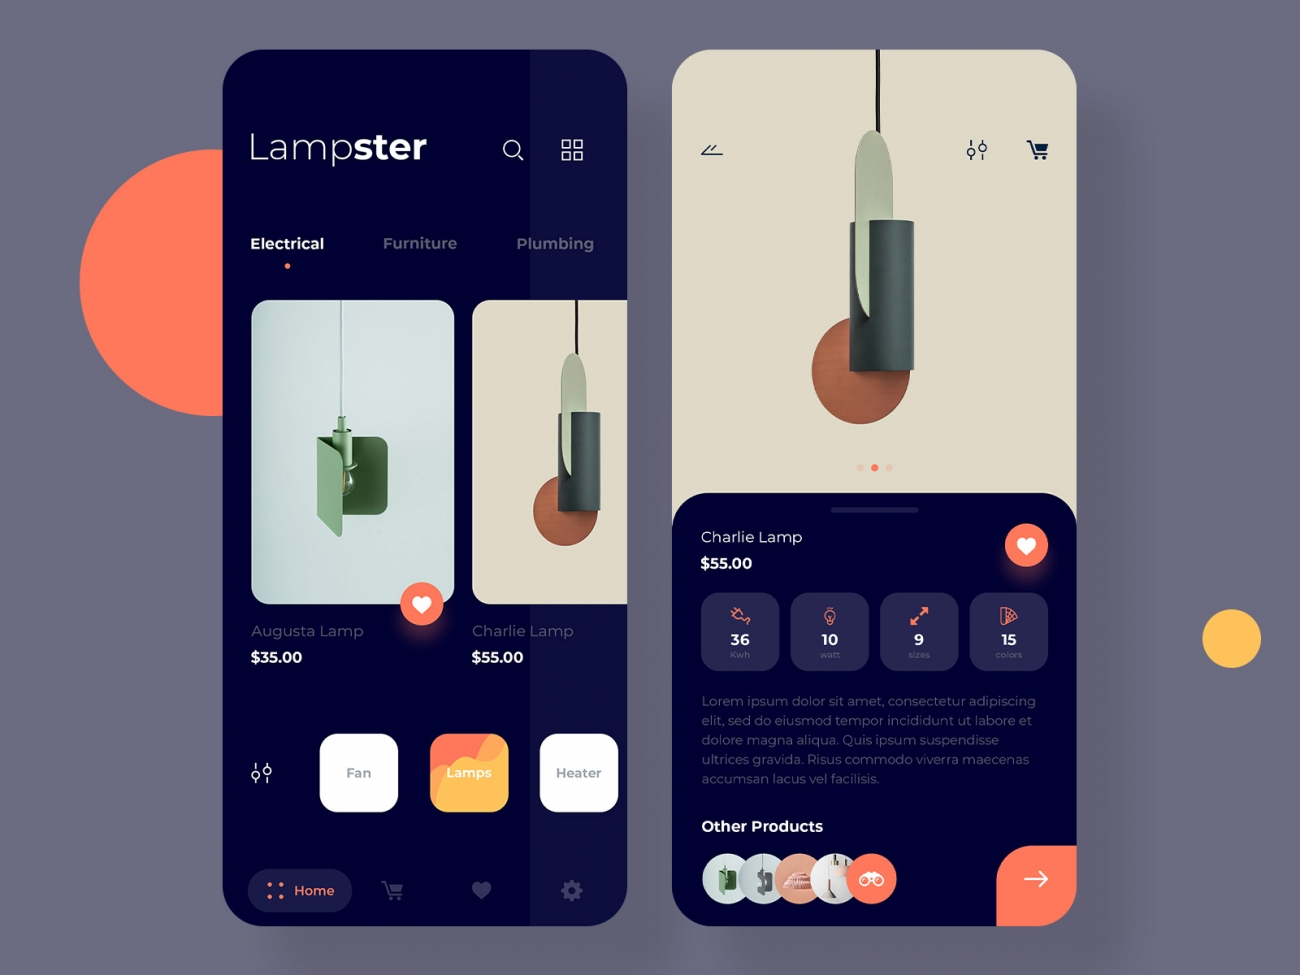 Go To Lampster App